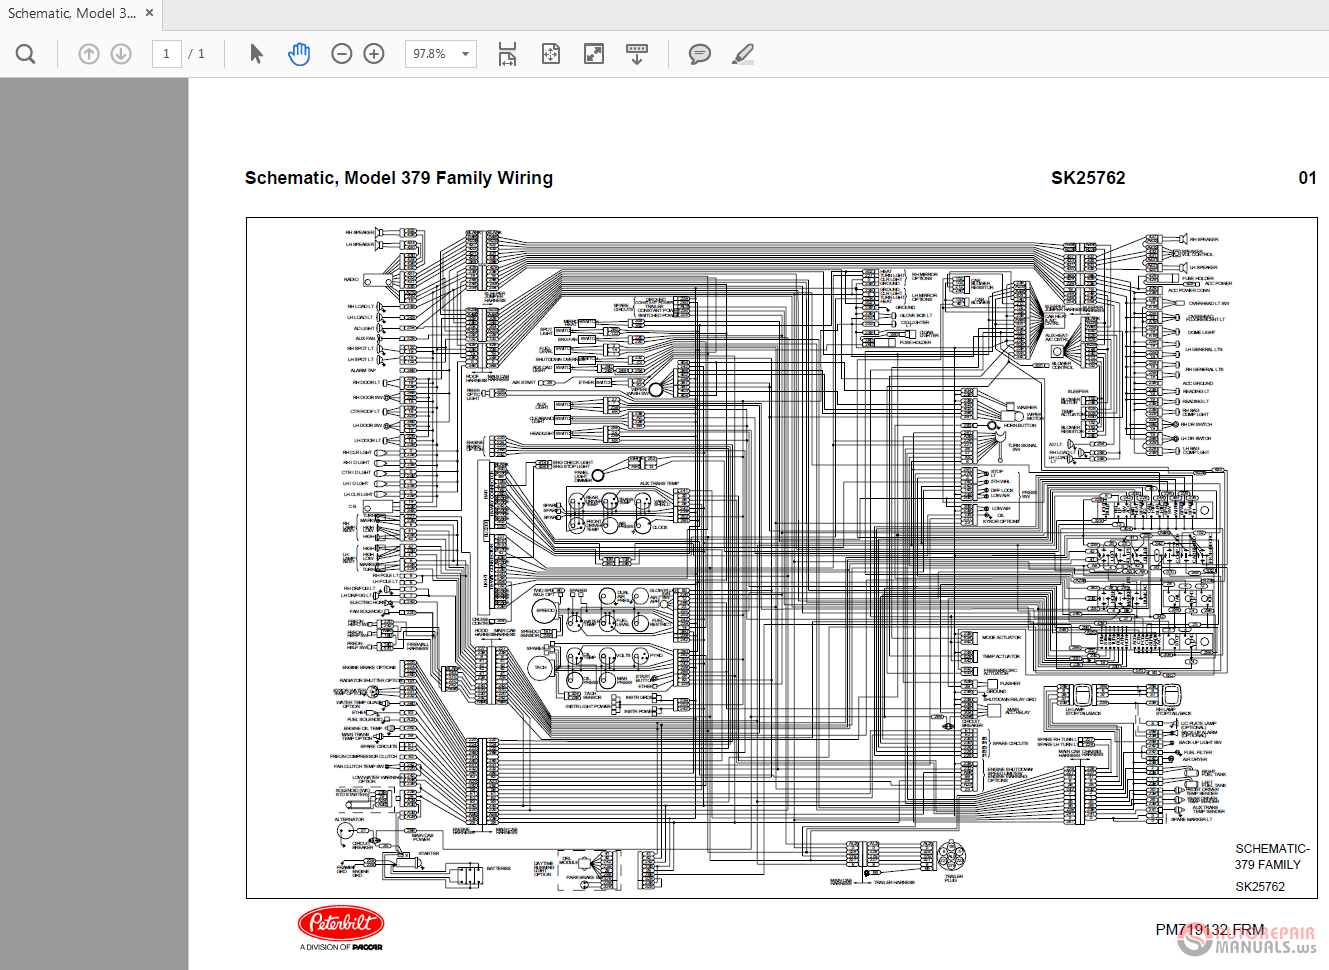 Peterbilt 379 SK25762 Family Wiring Diagrams | Auto Repair Manual Forum -  Heavy Equipment Forums - Download Repair & Workshop ManualAuto Repair Manual Forum